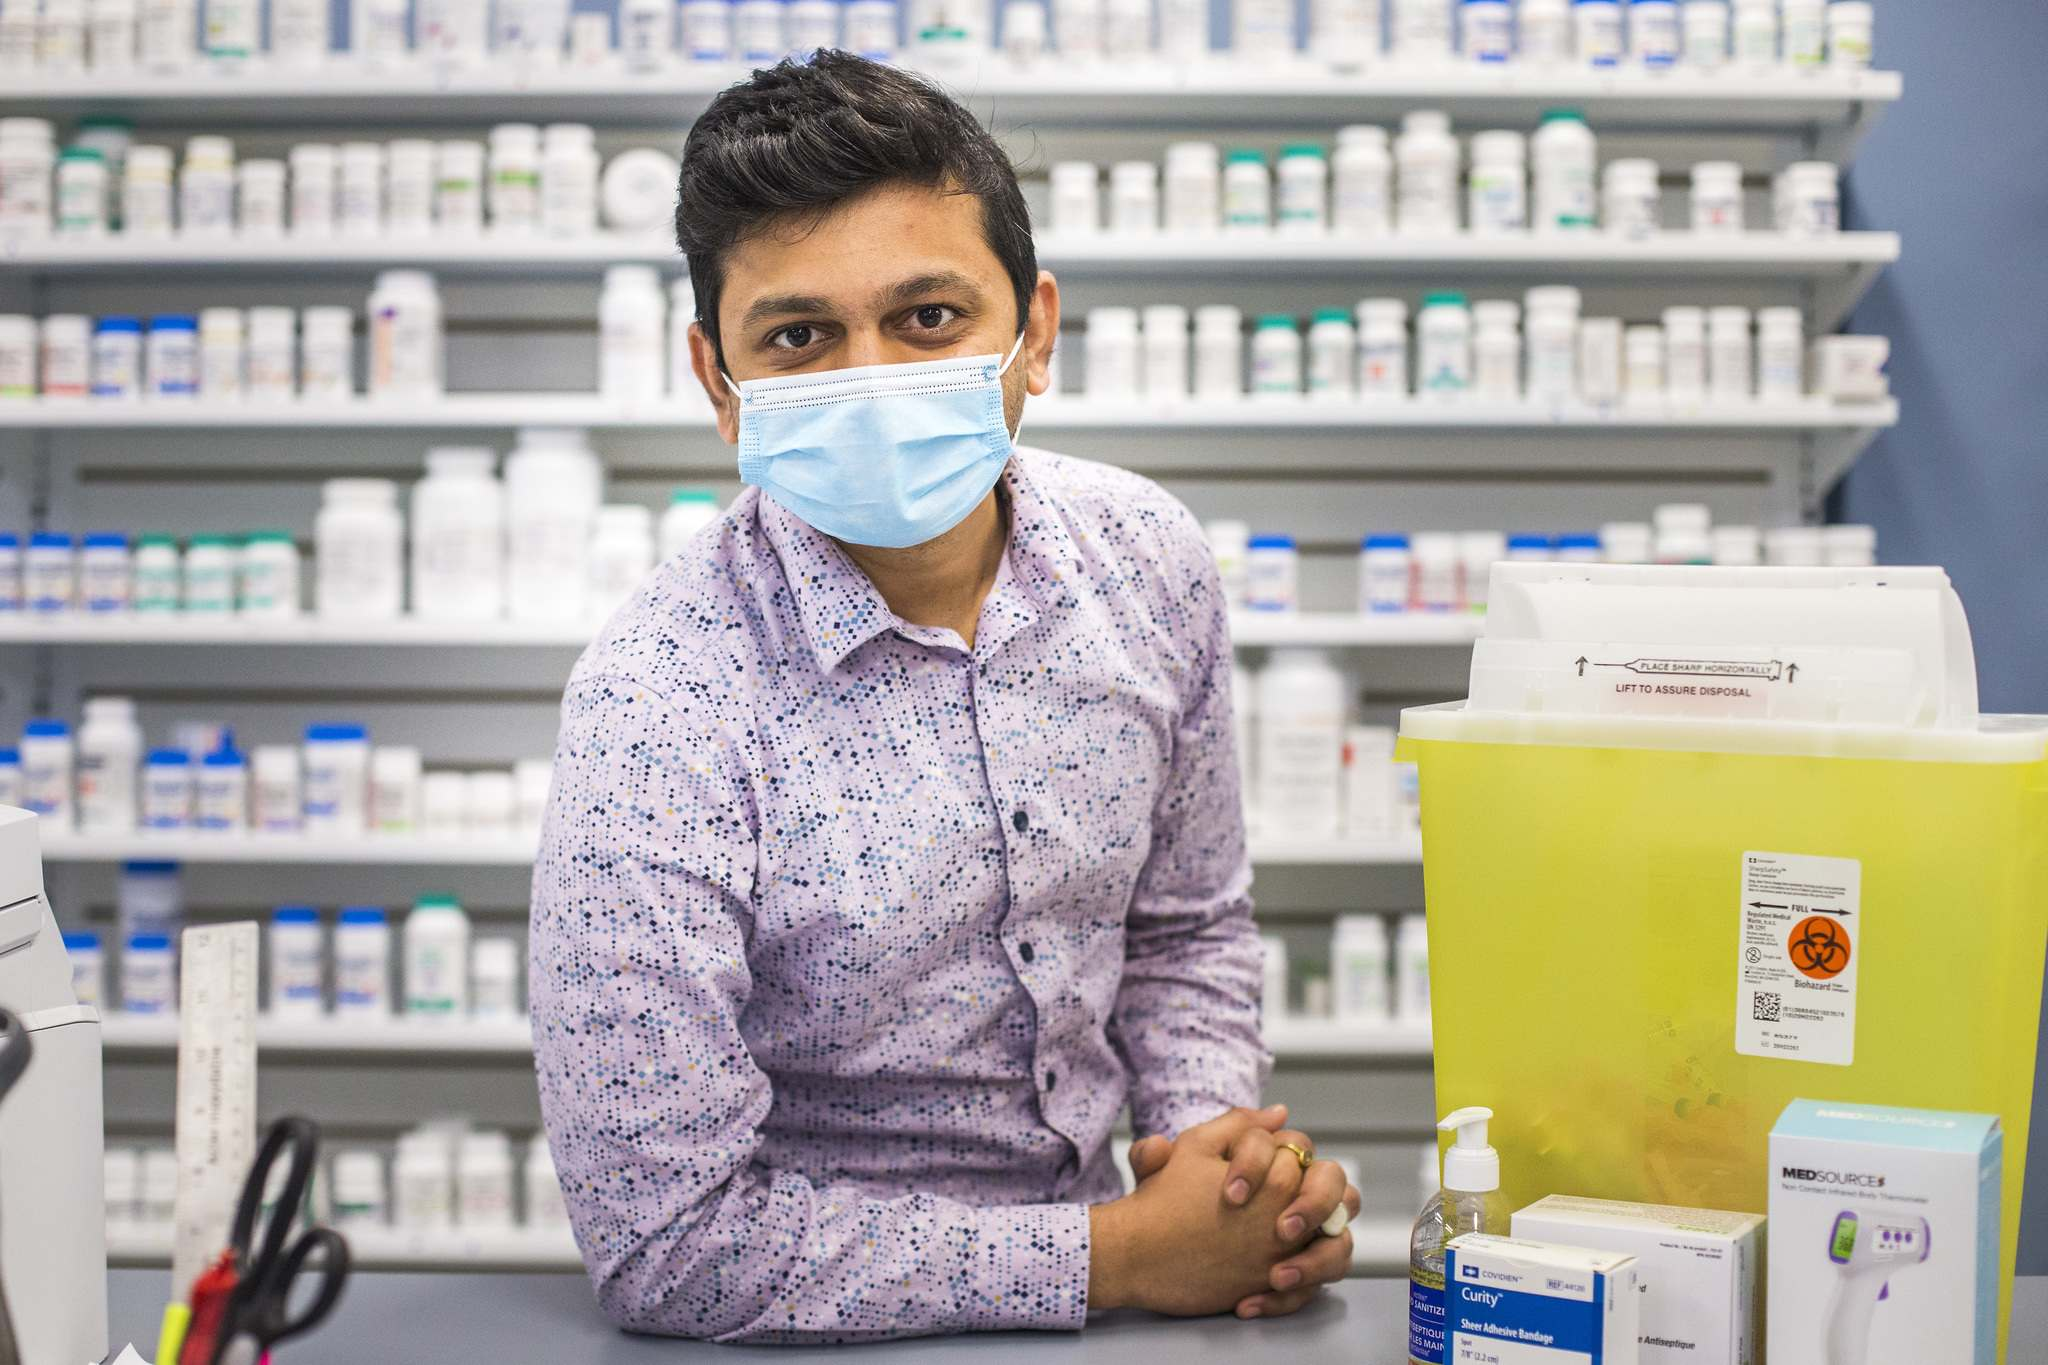 MIKAELA MACKENZIE / WINNIPEG FREE PRESS</p><p>Bhargav Desai, pharmacy manager at Peguis Pharmacy, says his last shipment of AstraZeneca was on April 20 and all of the doses were used and no appointments were cancelled. </p>